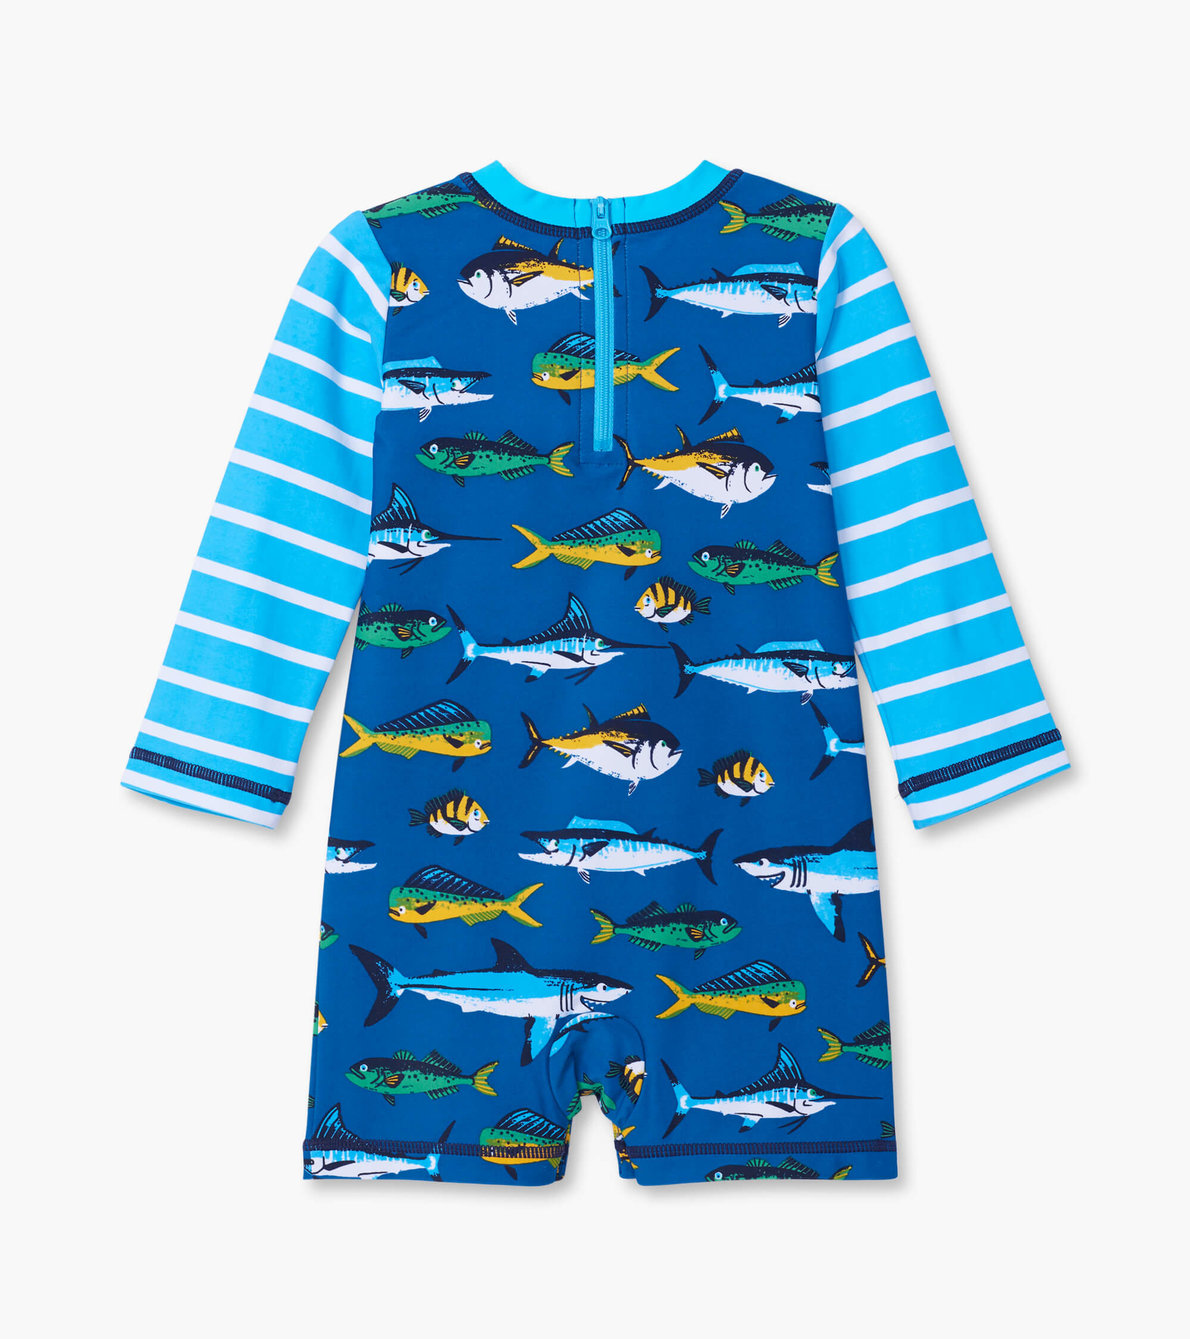 View larger image of Game Fish Baby Rashguard One-Piece